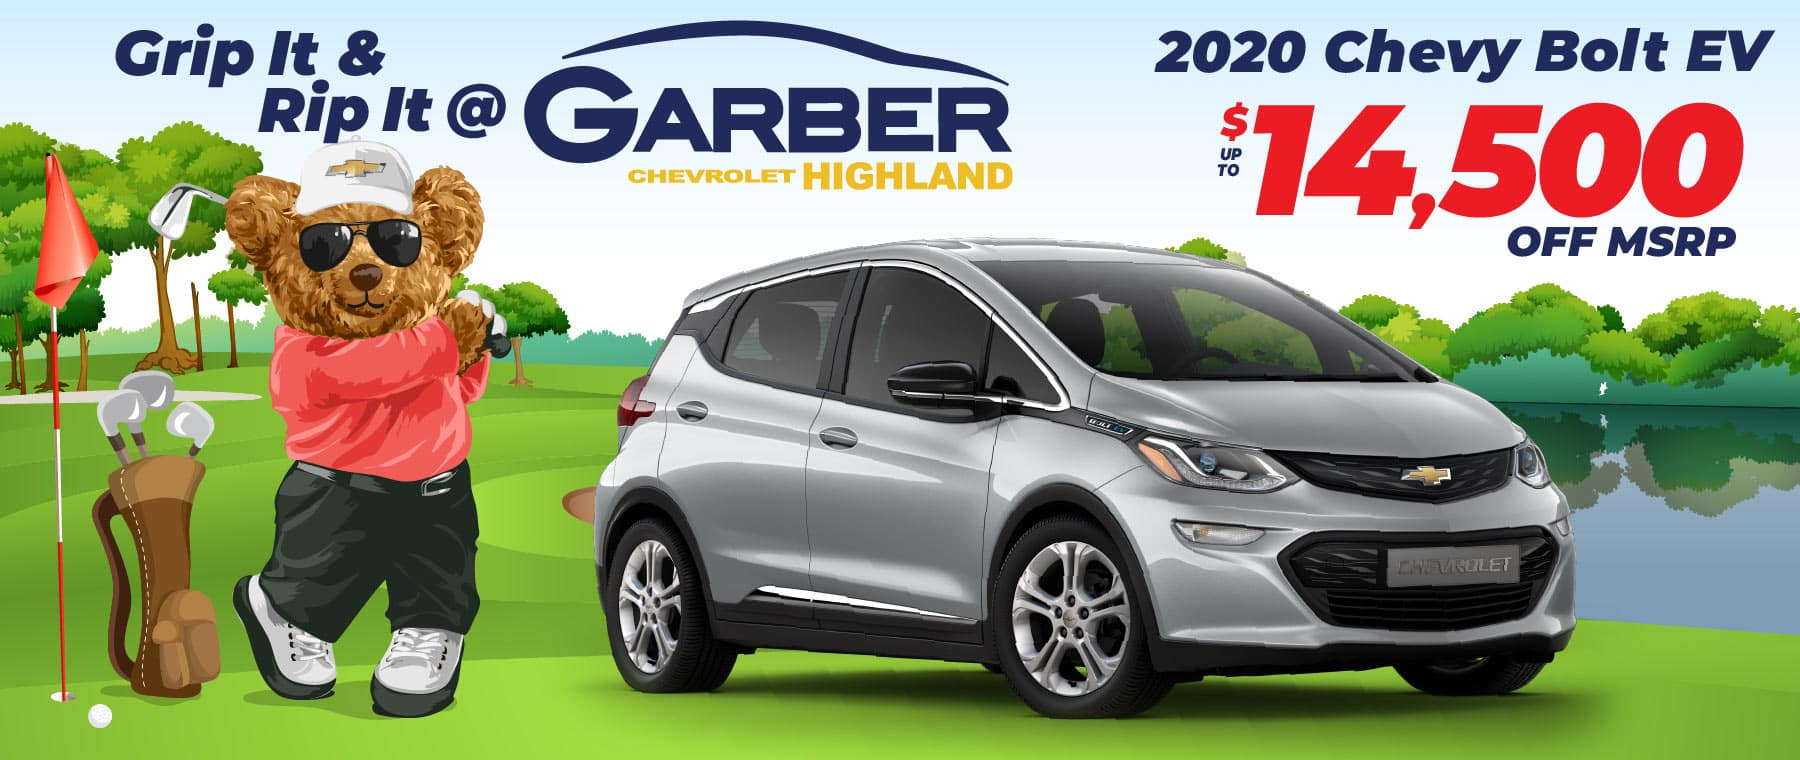 2020 Chevy Bolt - up to $14,500 off MSRP